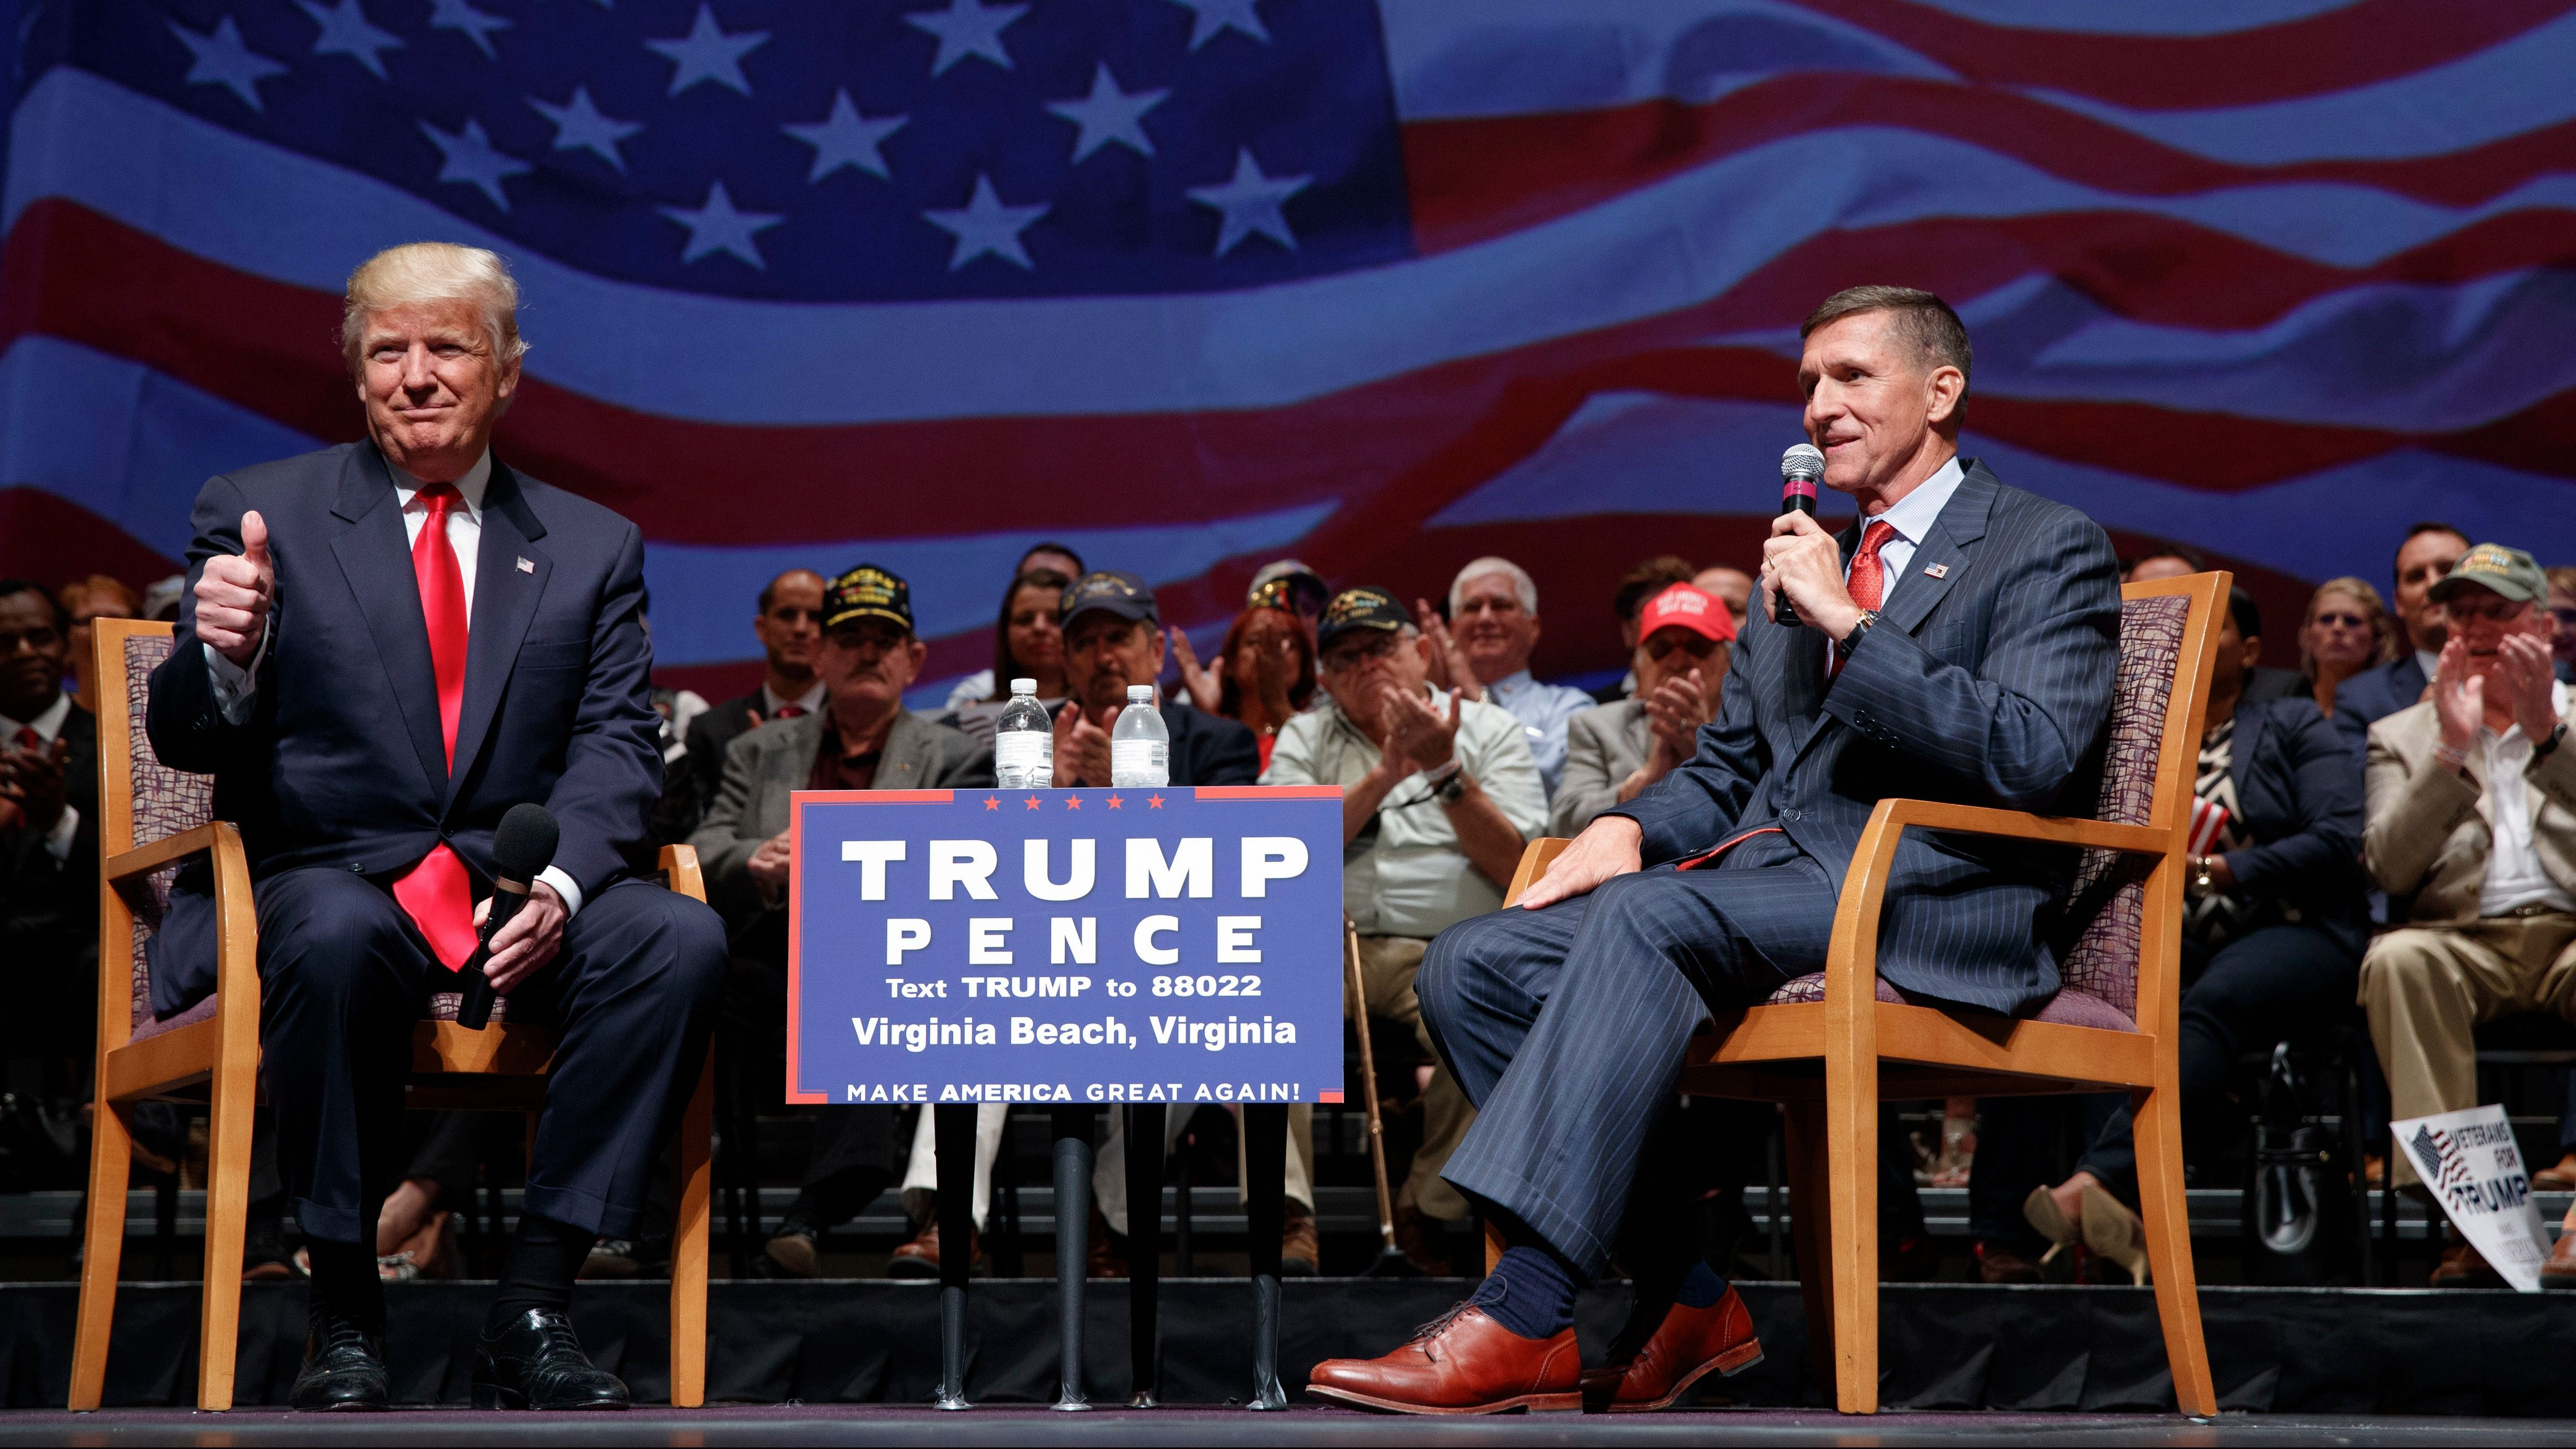 Republican presidential candidate Donald Trump gives a thumbs up as he speaks with retired Lt. Gen. Michael Flynn during a town hall, Tuesday, Sept. 6, 2016, in Virginia Beach, Va. (AP Photo/Evan Vucci)